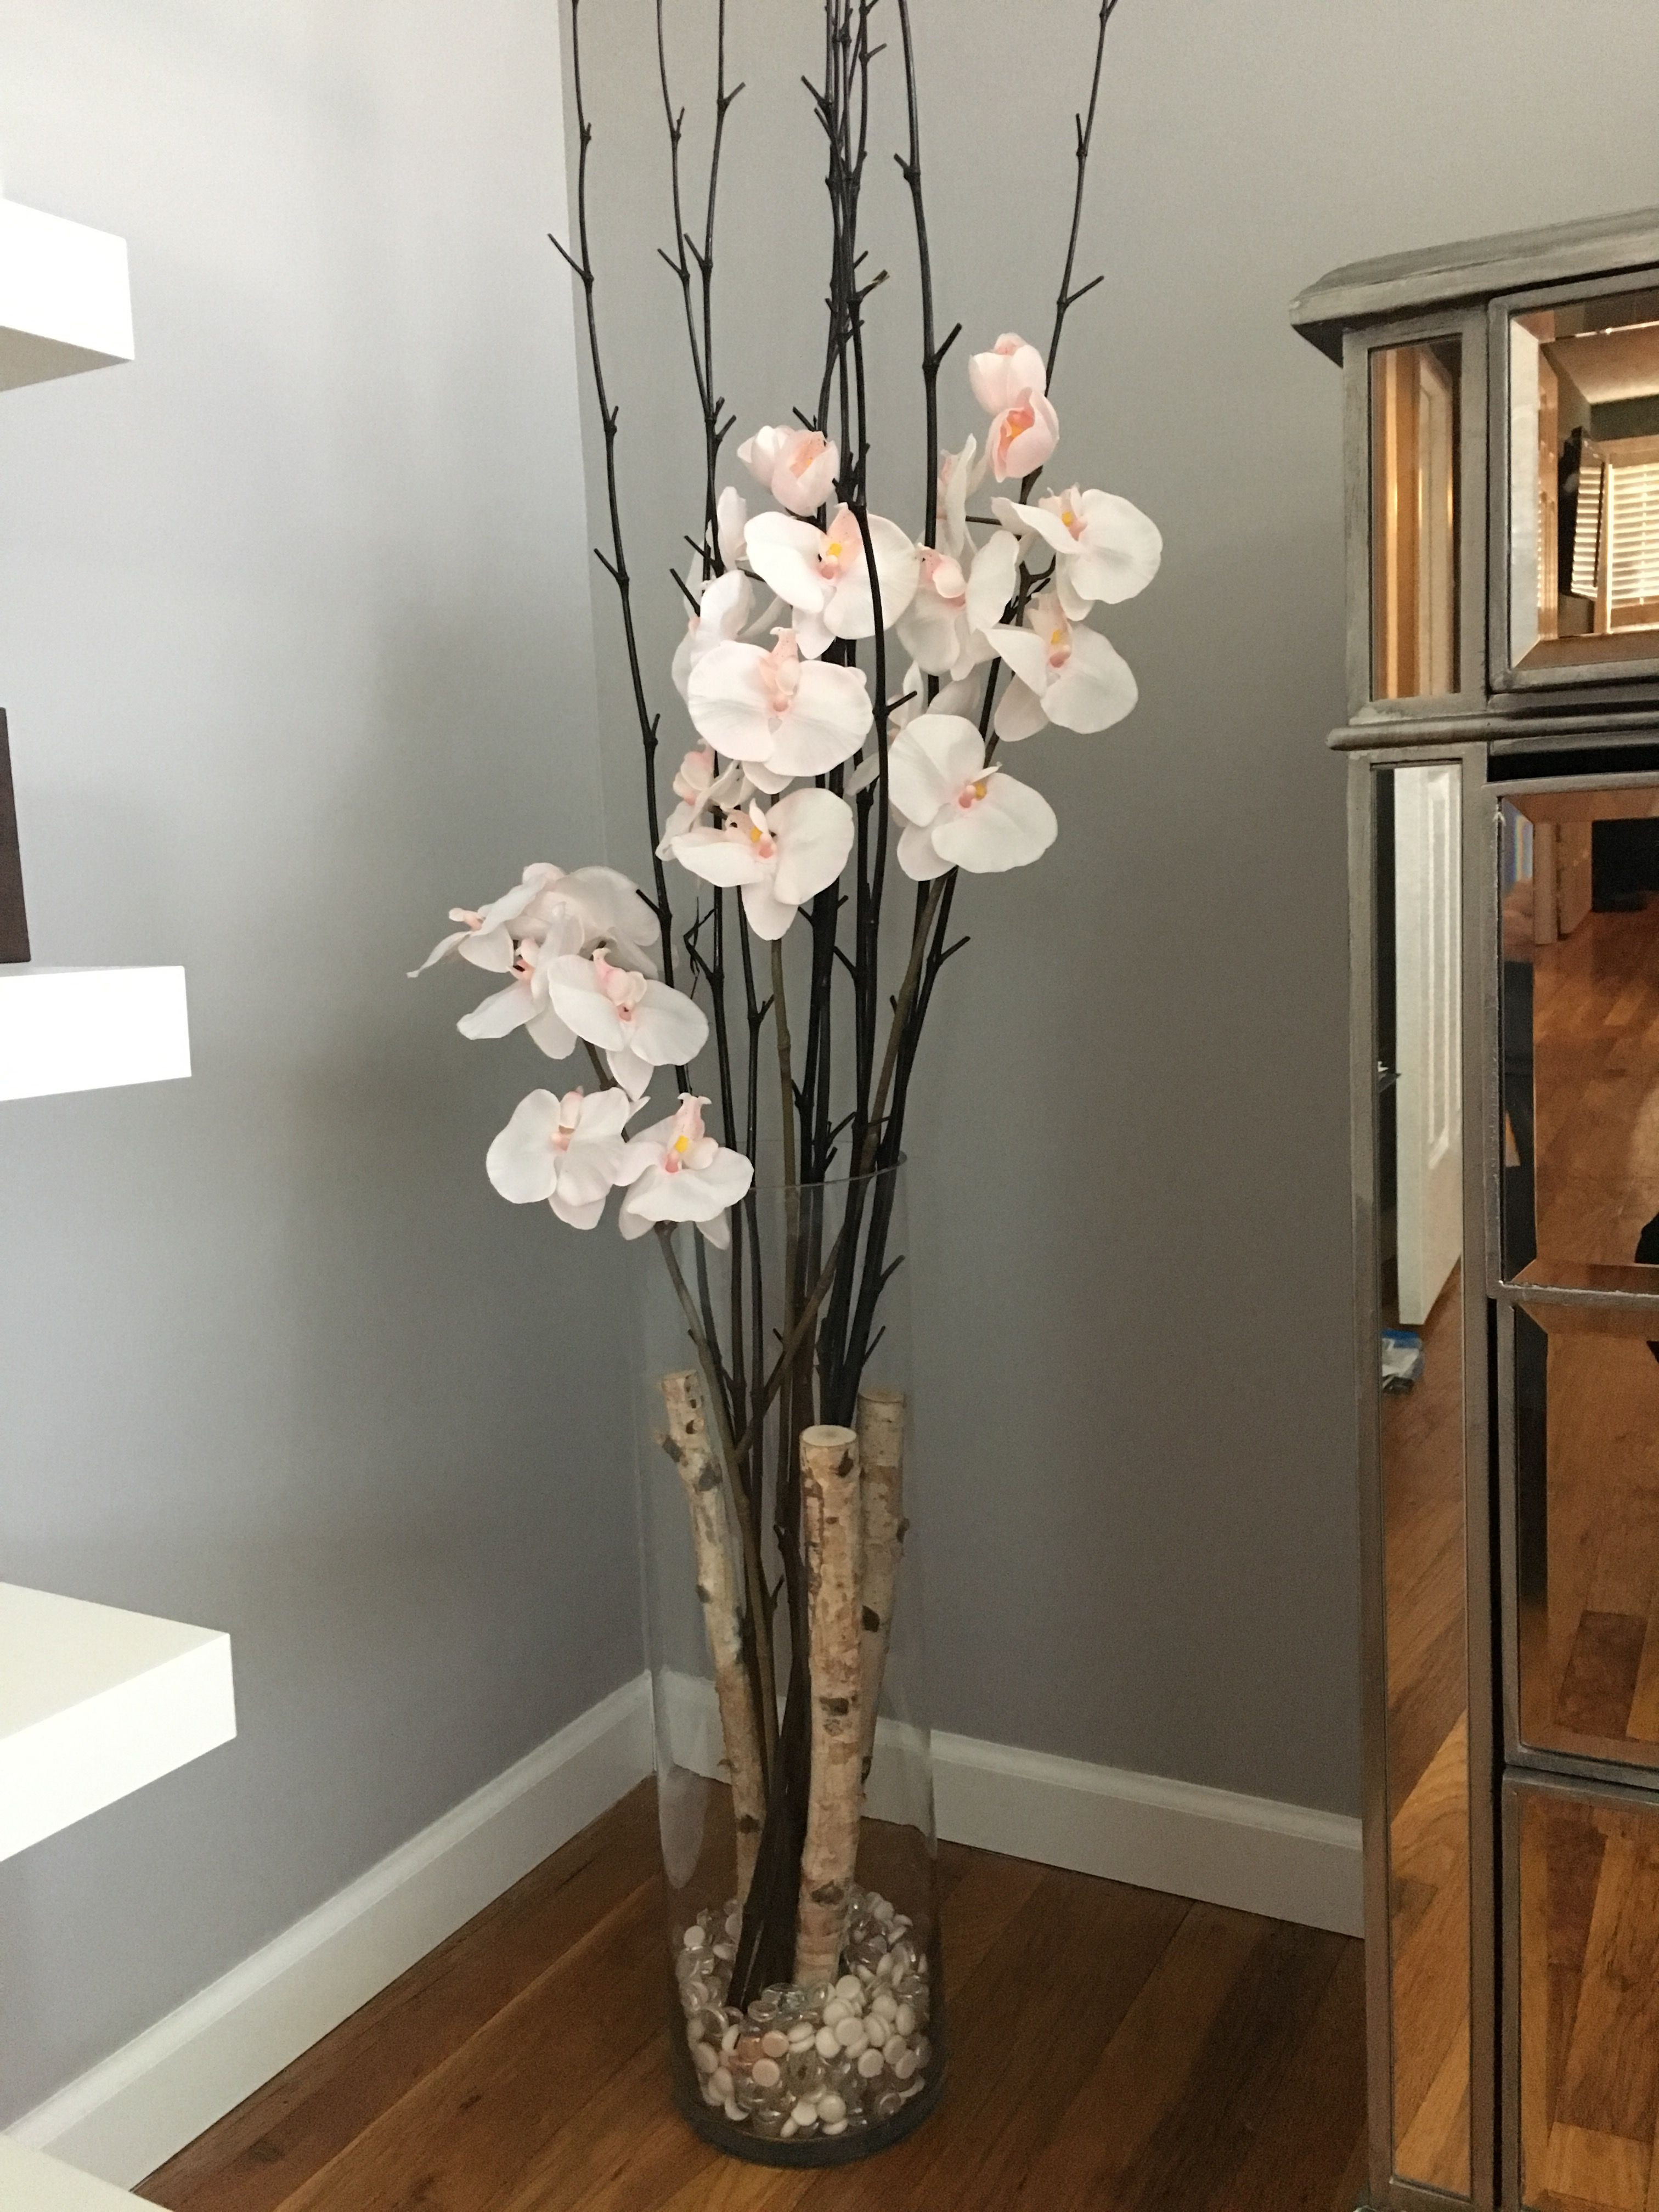 cube glass vase 6x6x6 of vases artificial plants collection with tall floor vase with branches stock orchid flower floor vase crafty diy decor of tall floor vase with branches